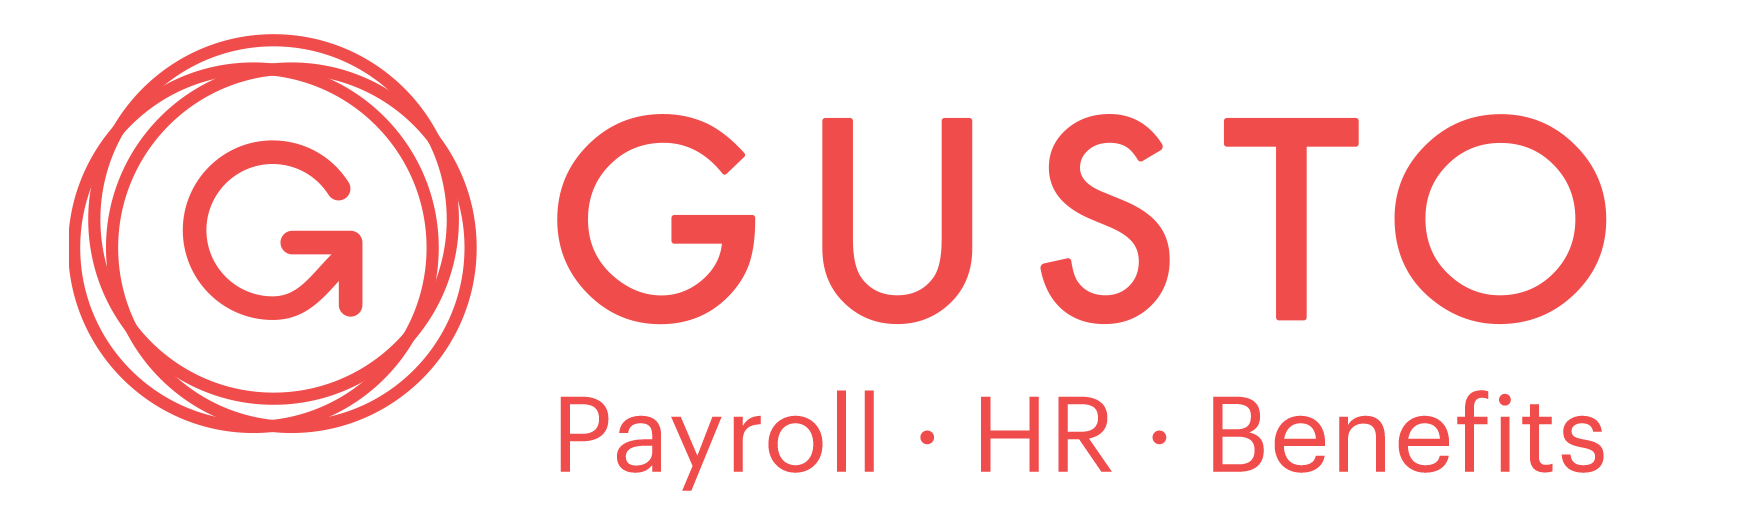 Photo of Gusto's logo. Gusto is a great payroll resource for psychologists in private practice who are looking for better HR and payroll solutions.